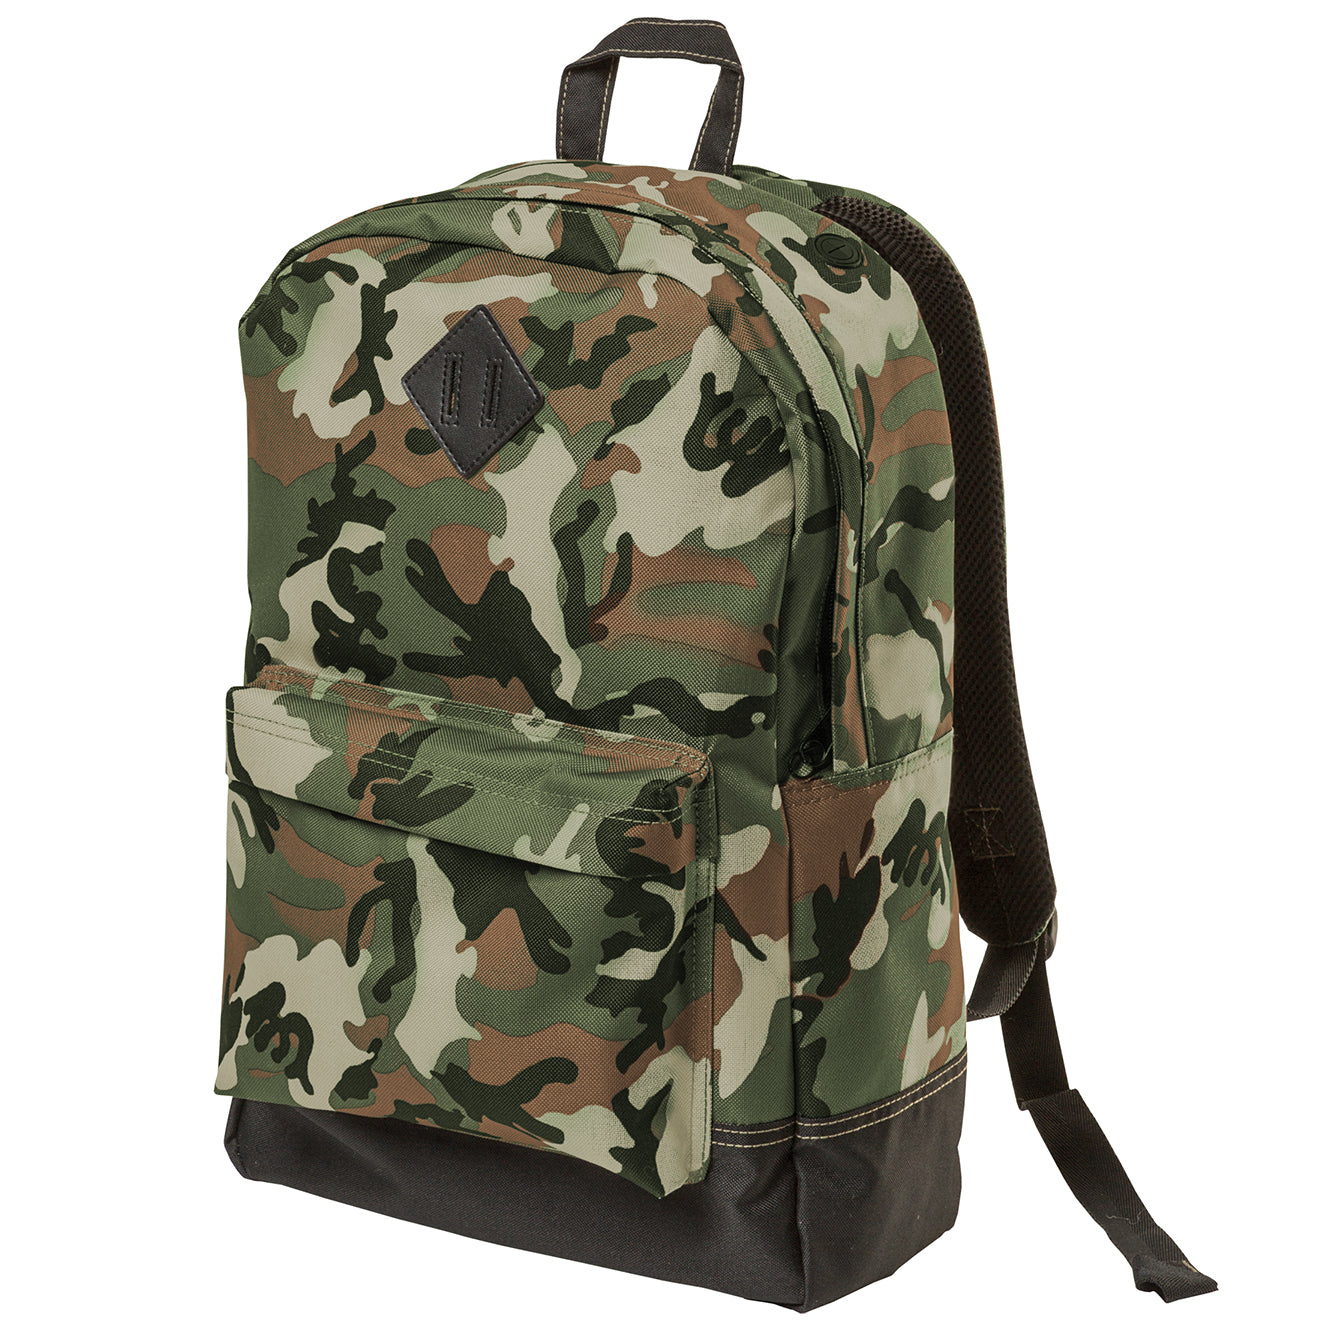 Women's Retro Backpack - Military Camo